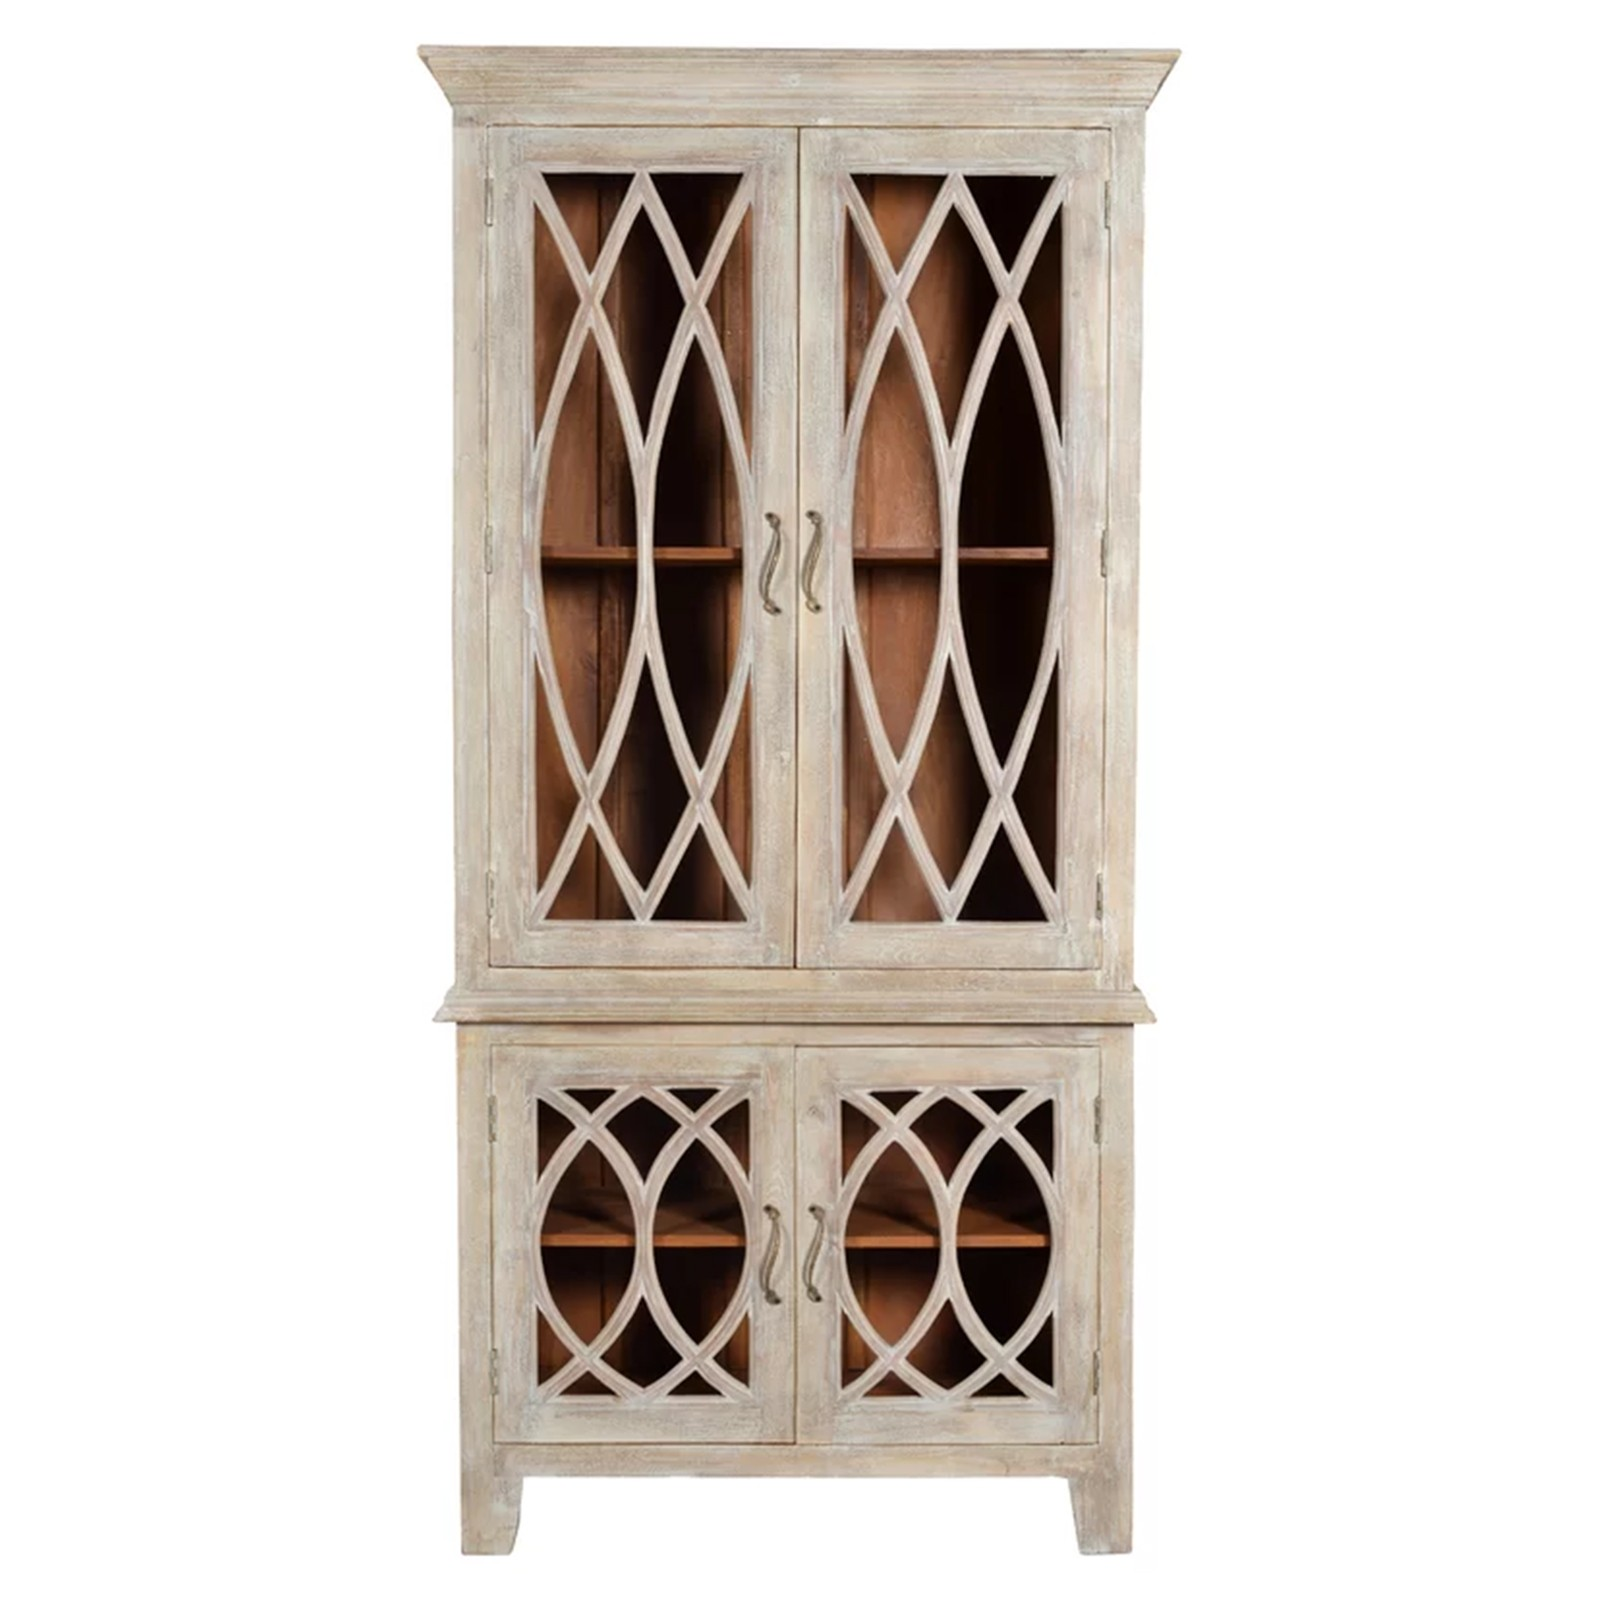 French Glass Kitchen Cabinet Doors: French Arched Glass Doors Cabinet Hutch